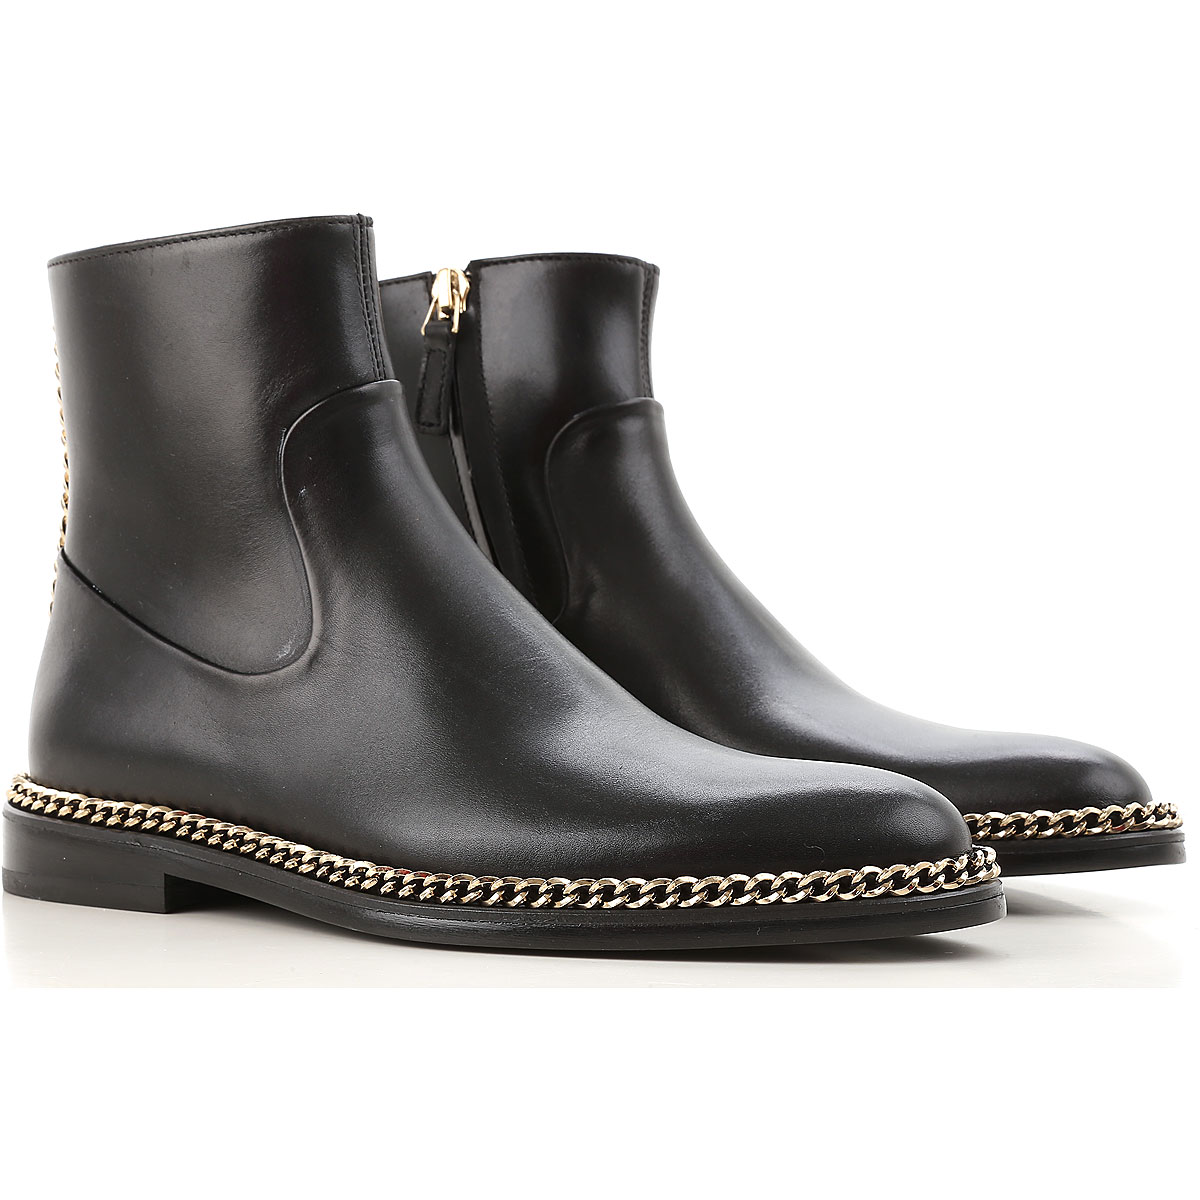 Lanvin Boots for Women, Booties On Sale in Outlet, Black, Leather, 2019, 5 8 8.5 9